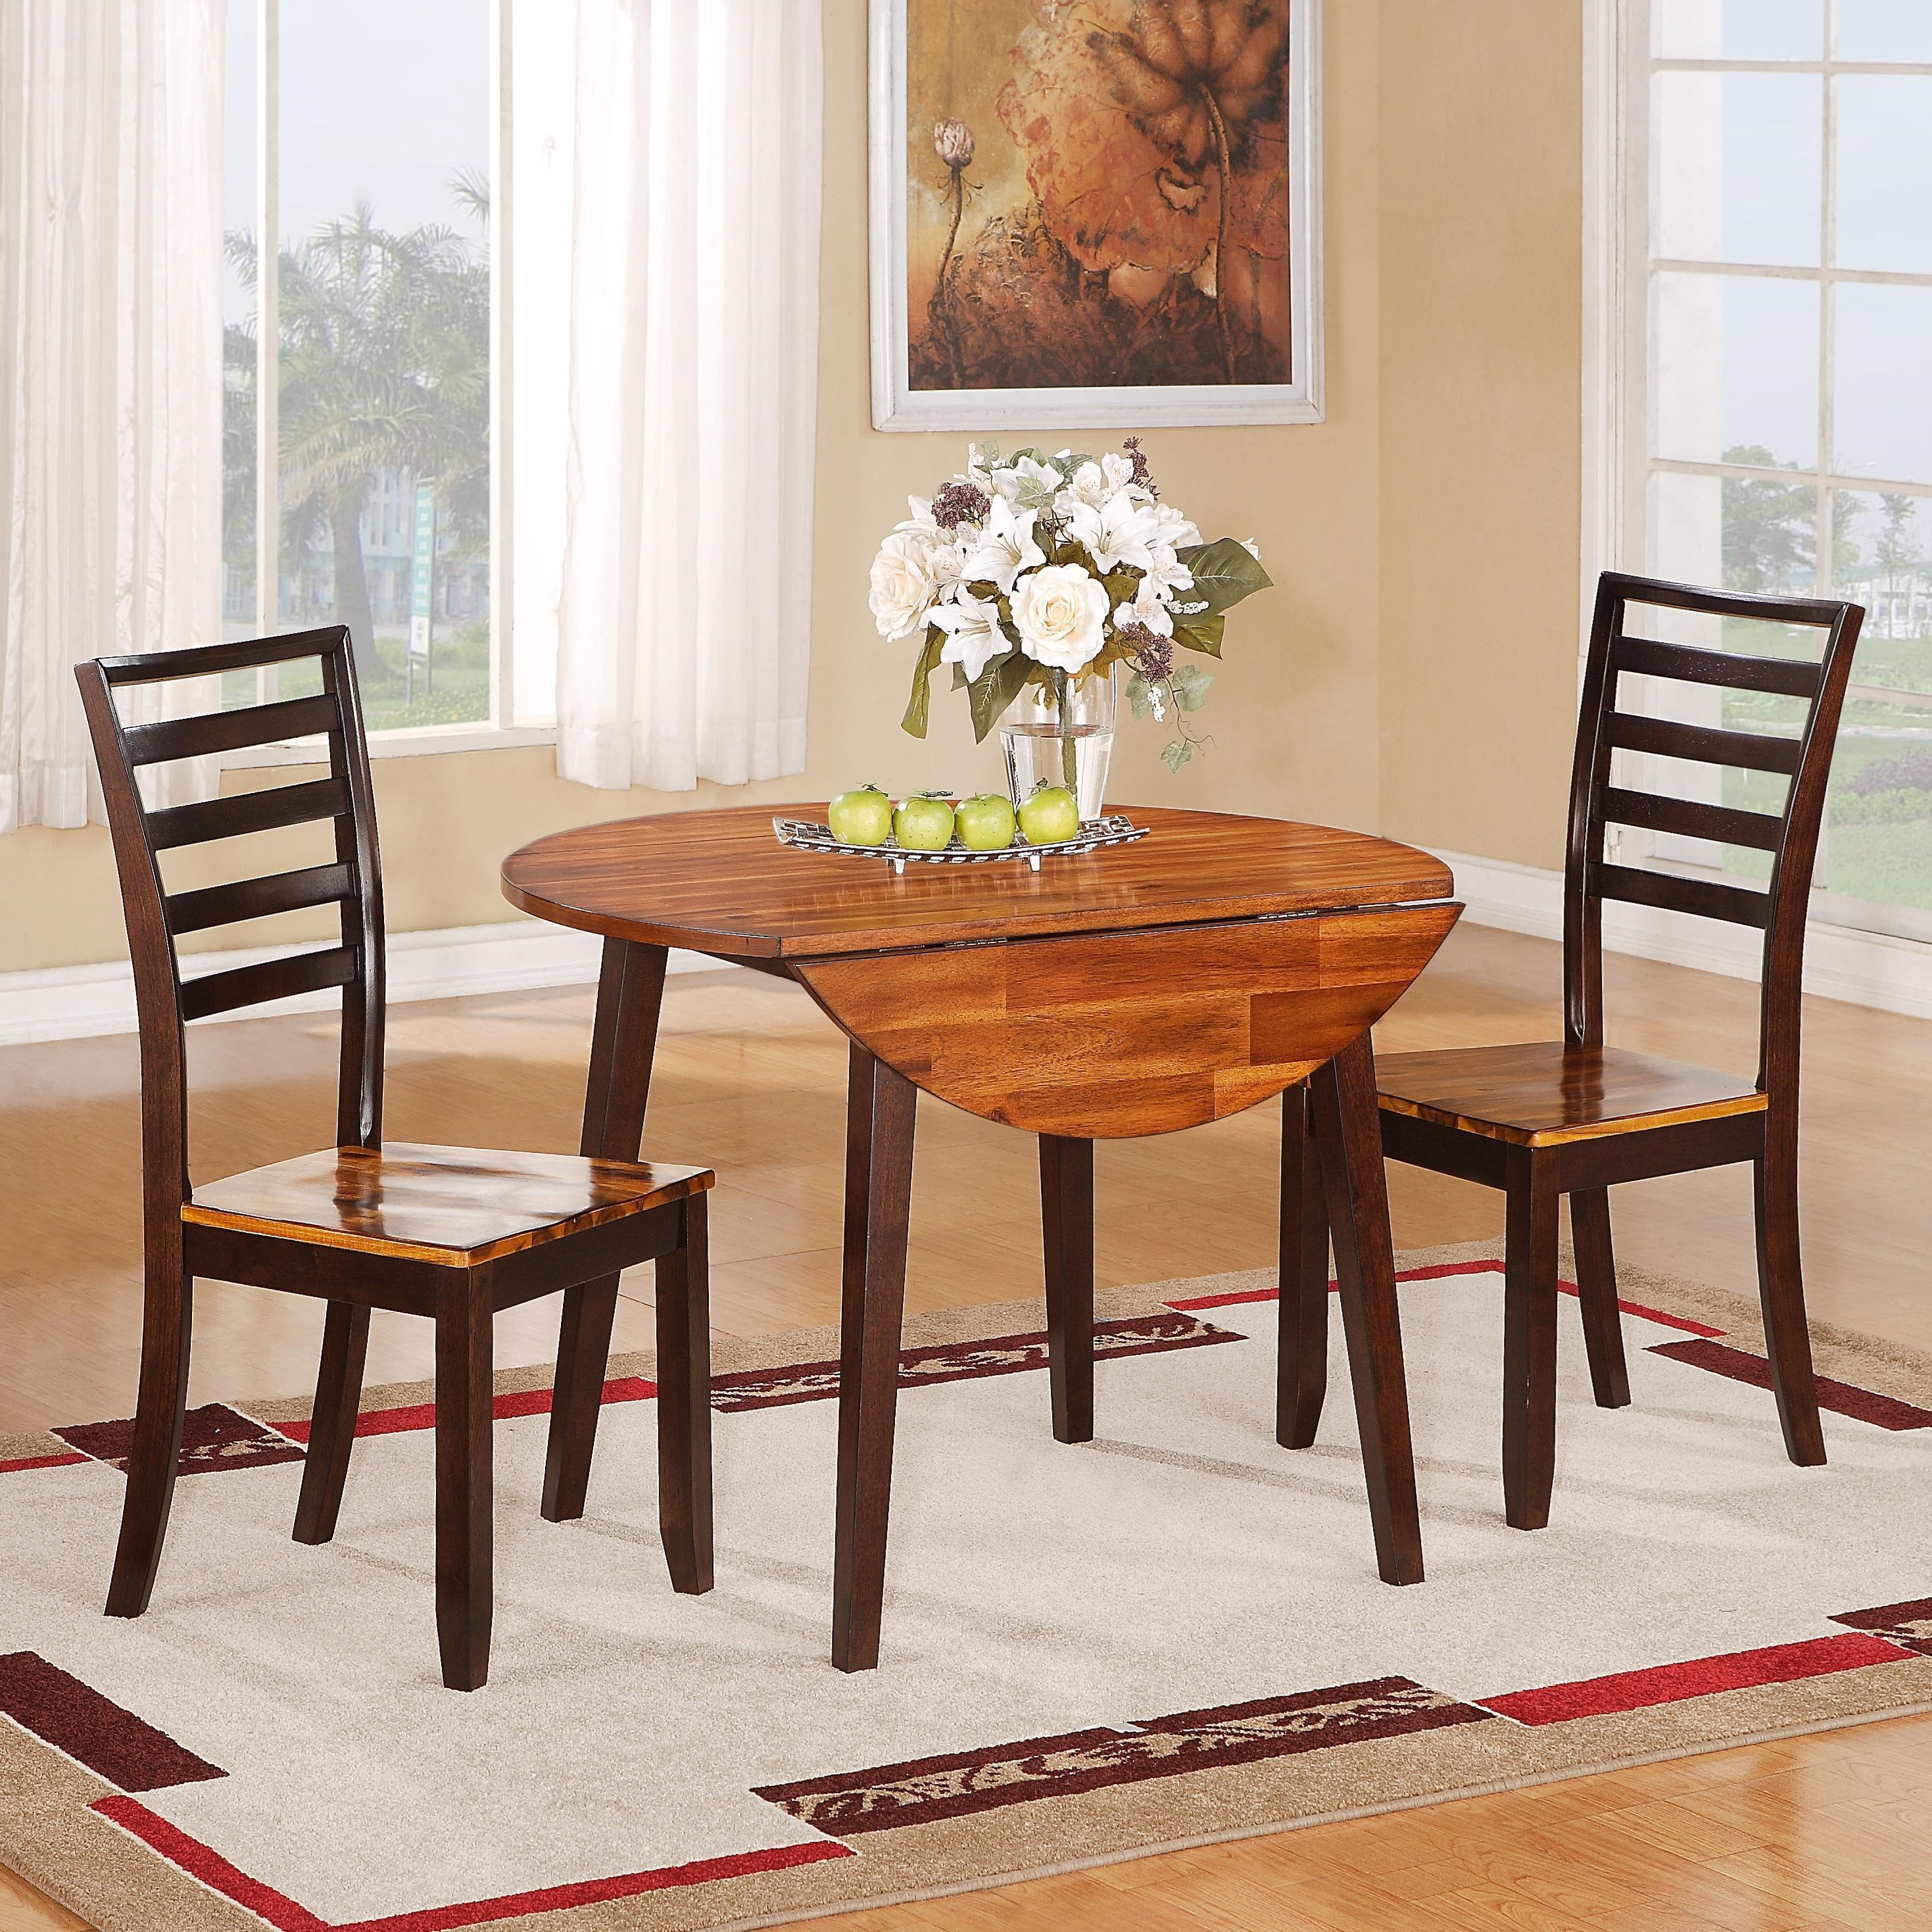 1267 dining casual five piece round drop leaf table and ladder backed chair set by holland house